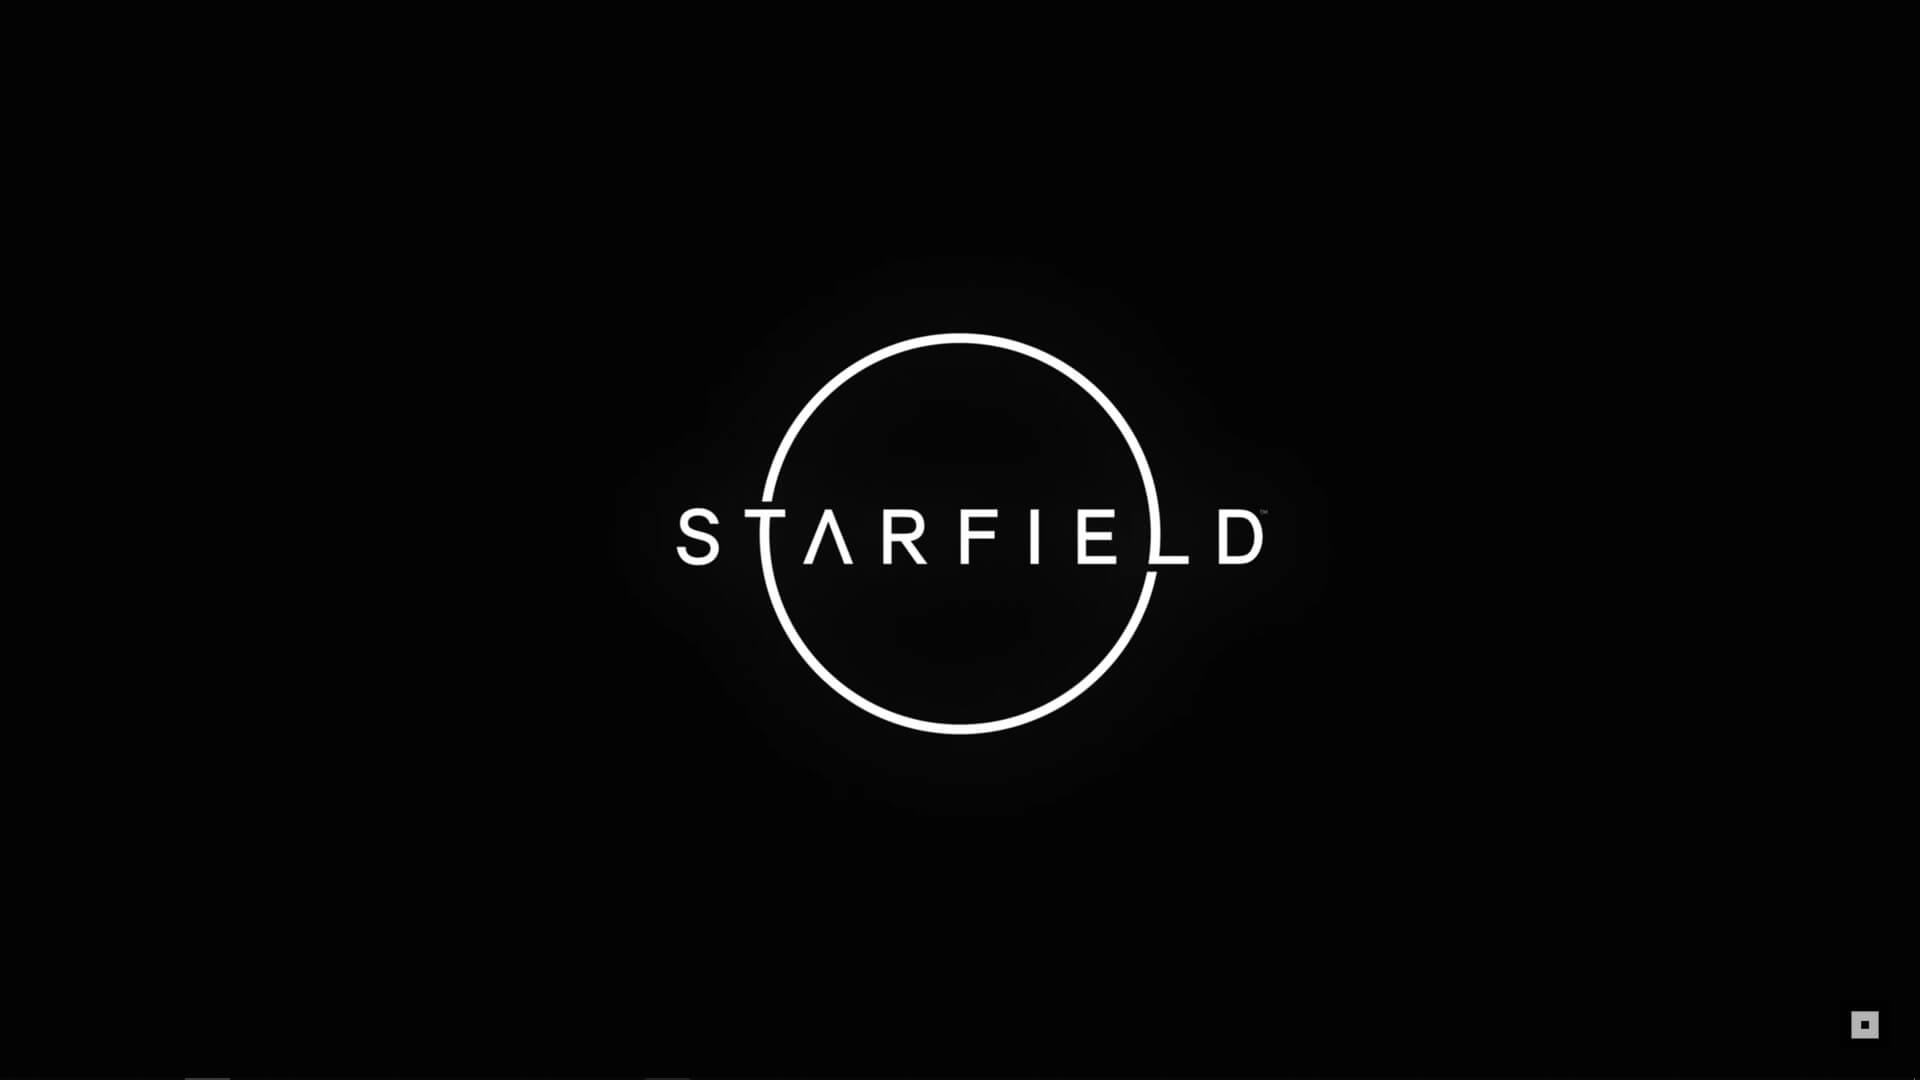 E3 2018: Starfield, Bethseda's Next Big Title, Announced